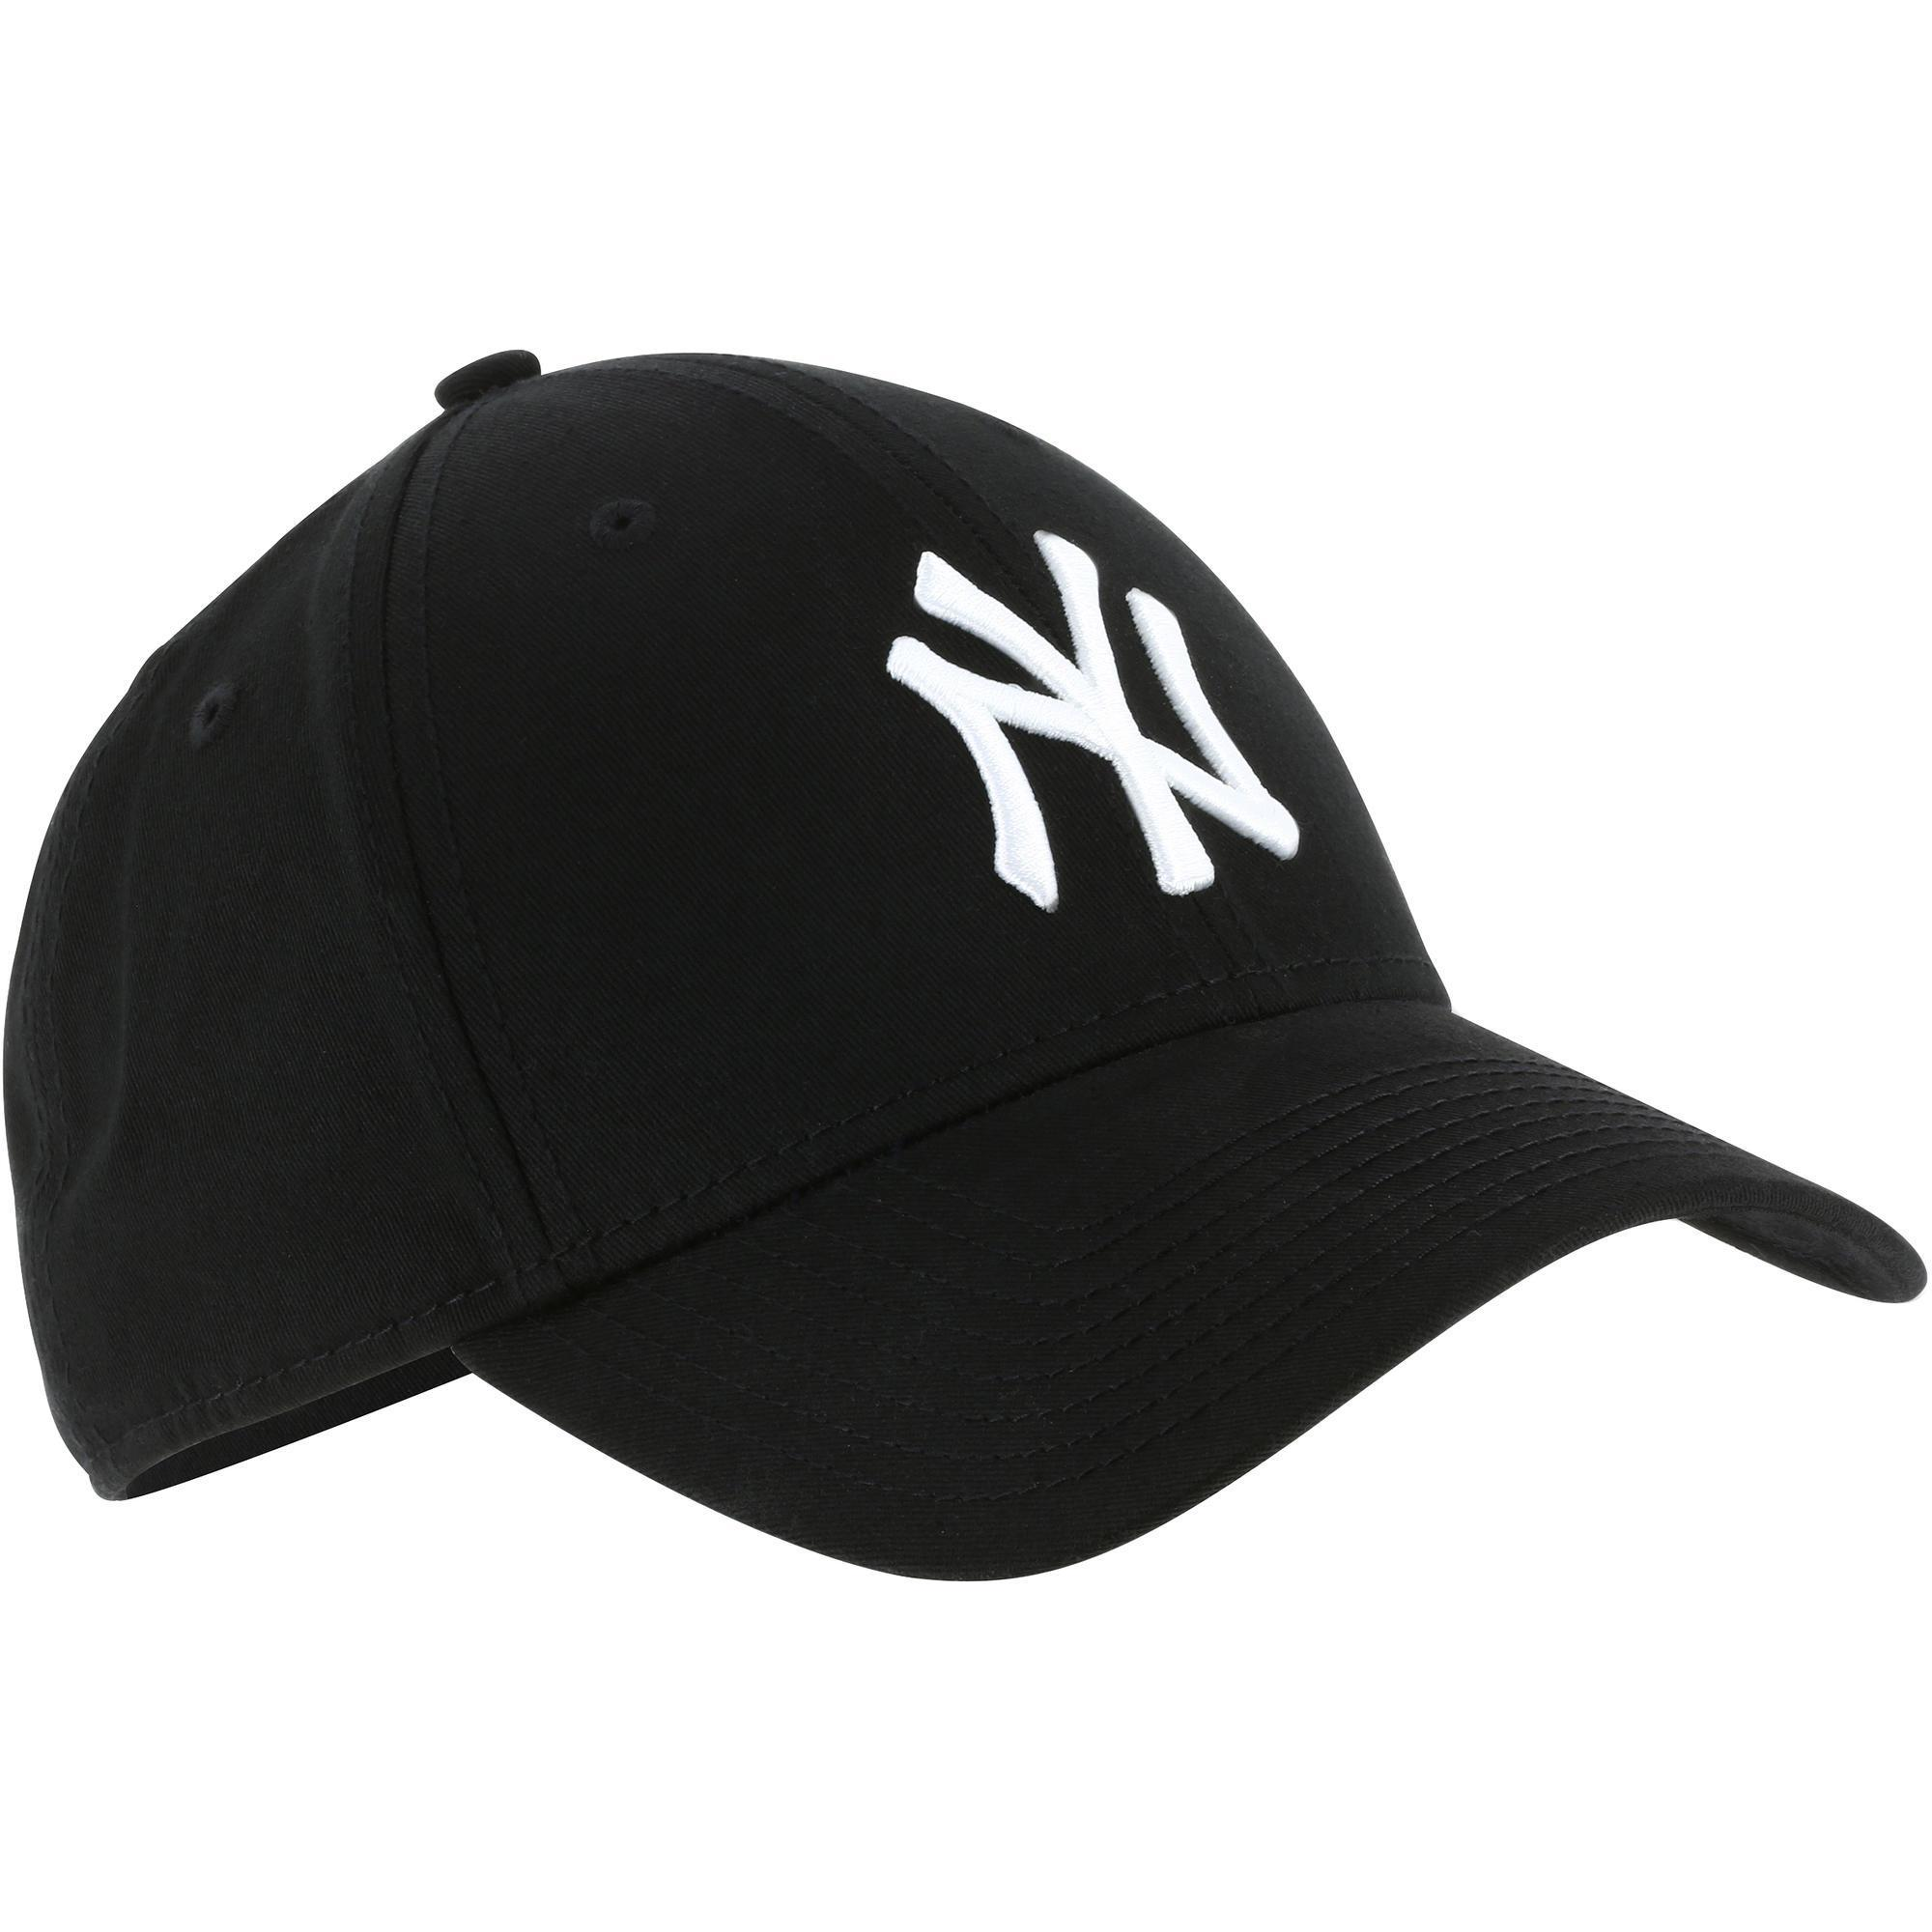 Gorra Plana de Béisbol para Adultos New York Yankees Negro New era  6798b3c5d3b